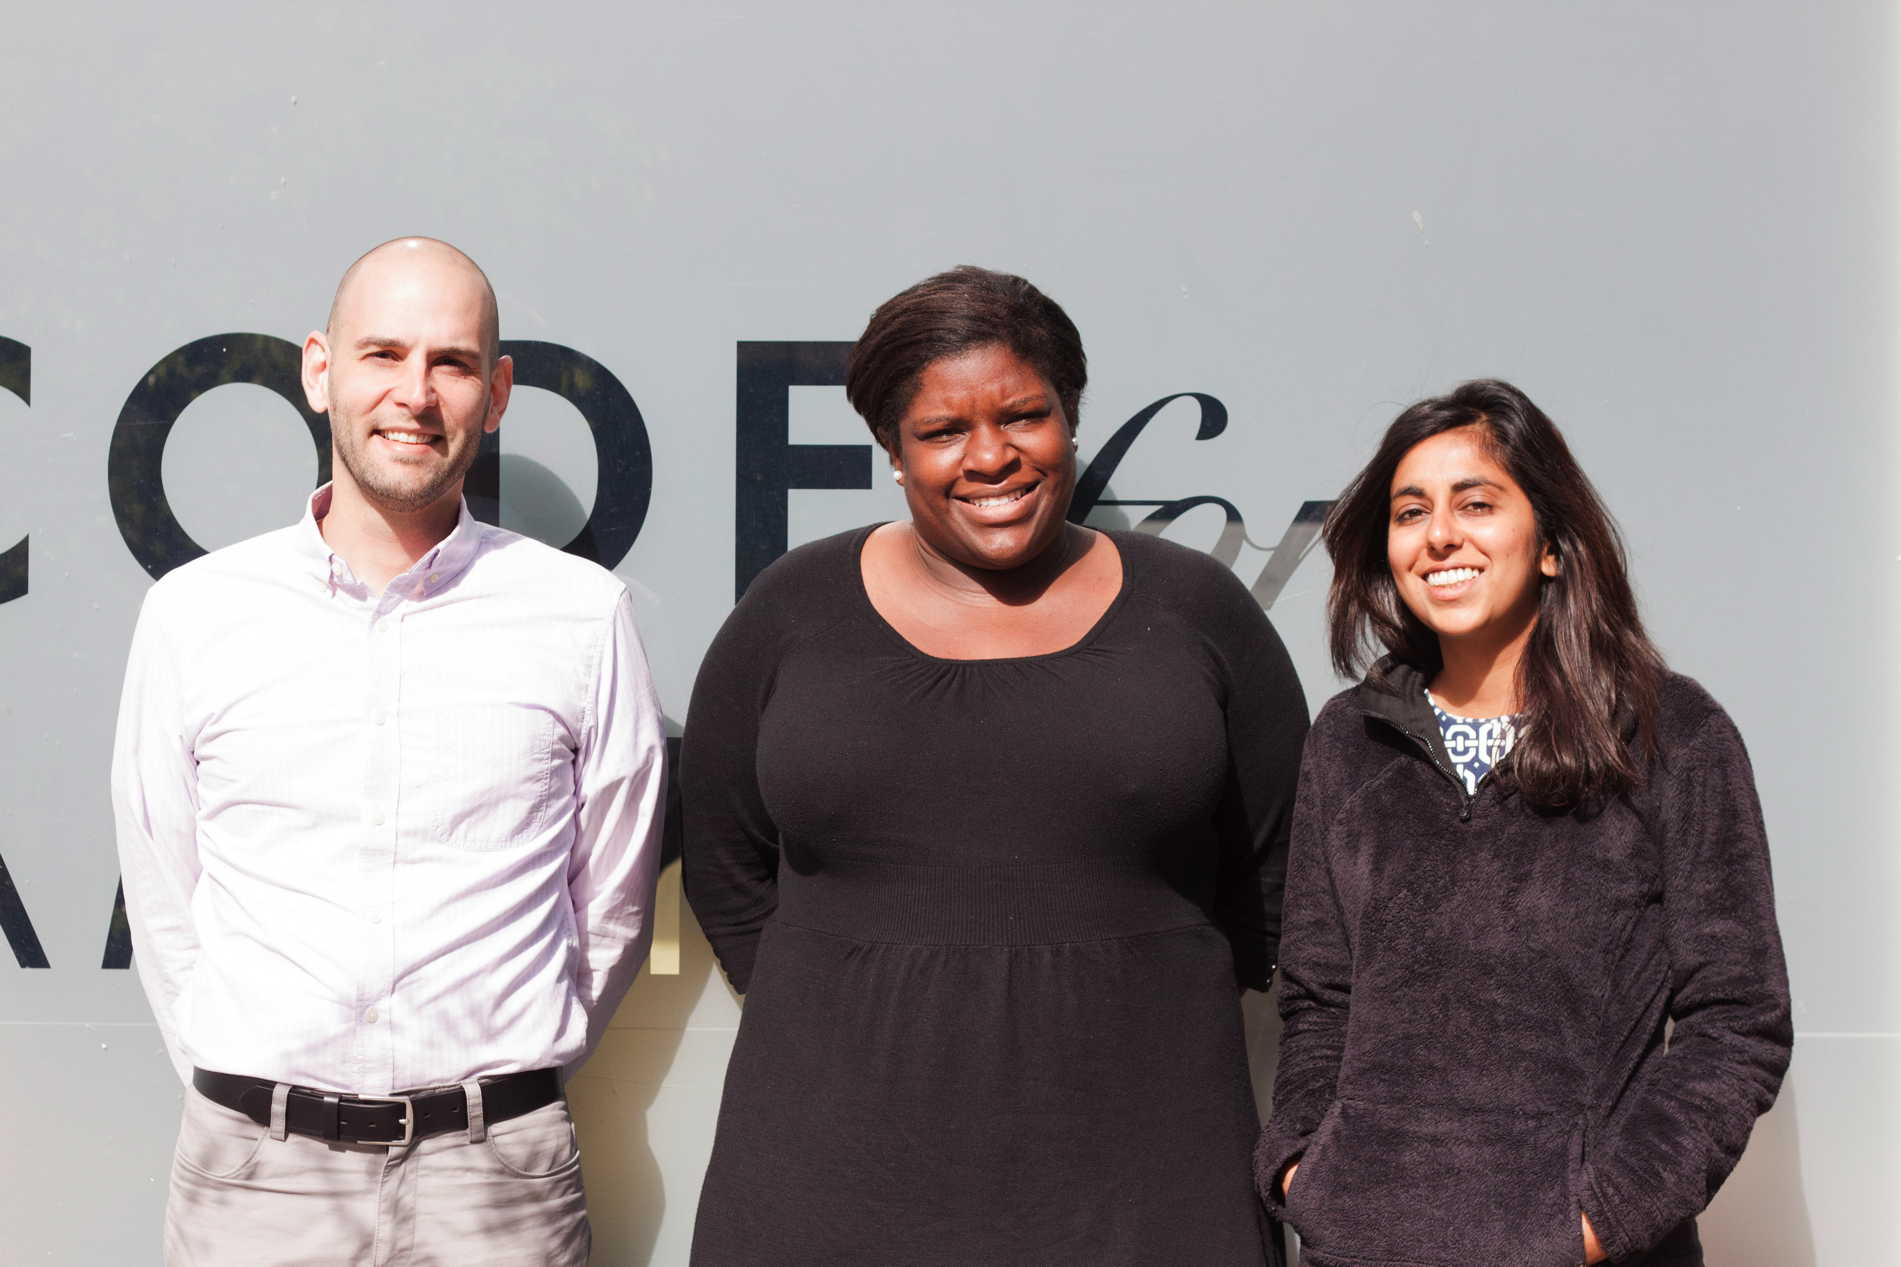 Cris Cristina (left), Sheila Dugan (center), and Richa Agarwal (right), are the three fellows assigned to Oakland this year.